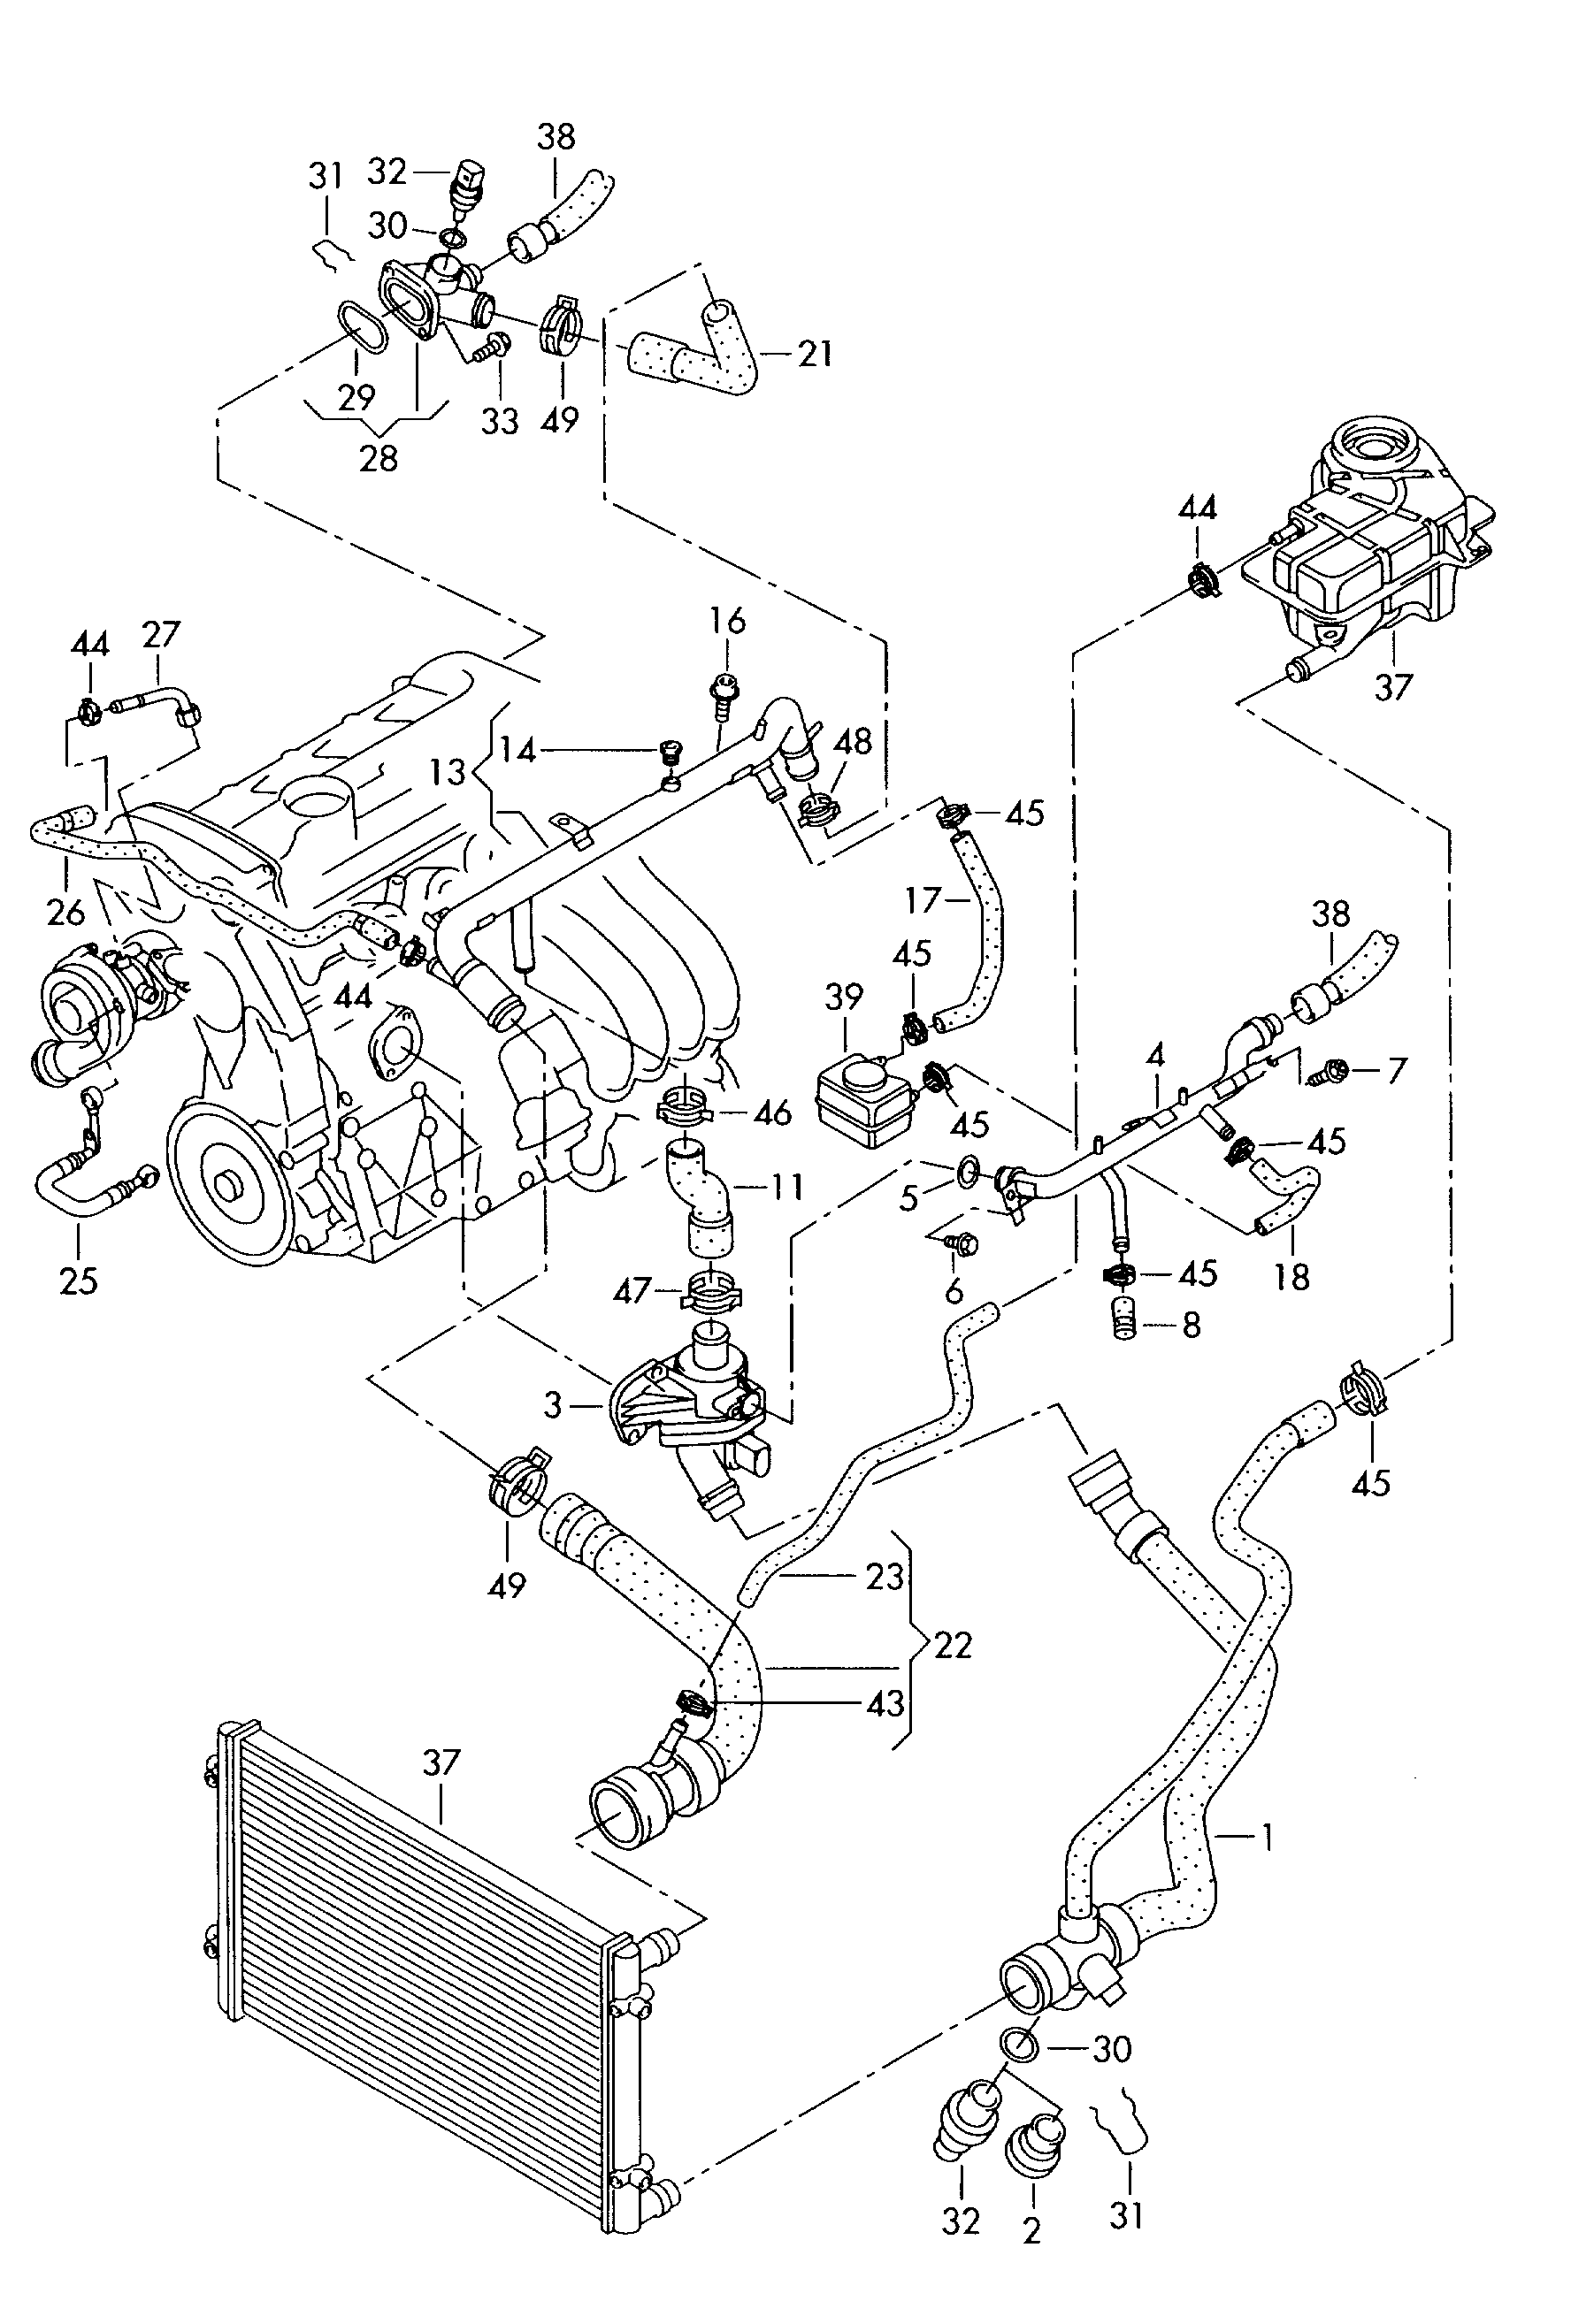 of of 2001 audi a4 cooling system schematic